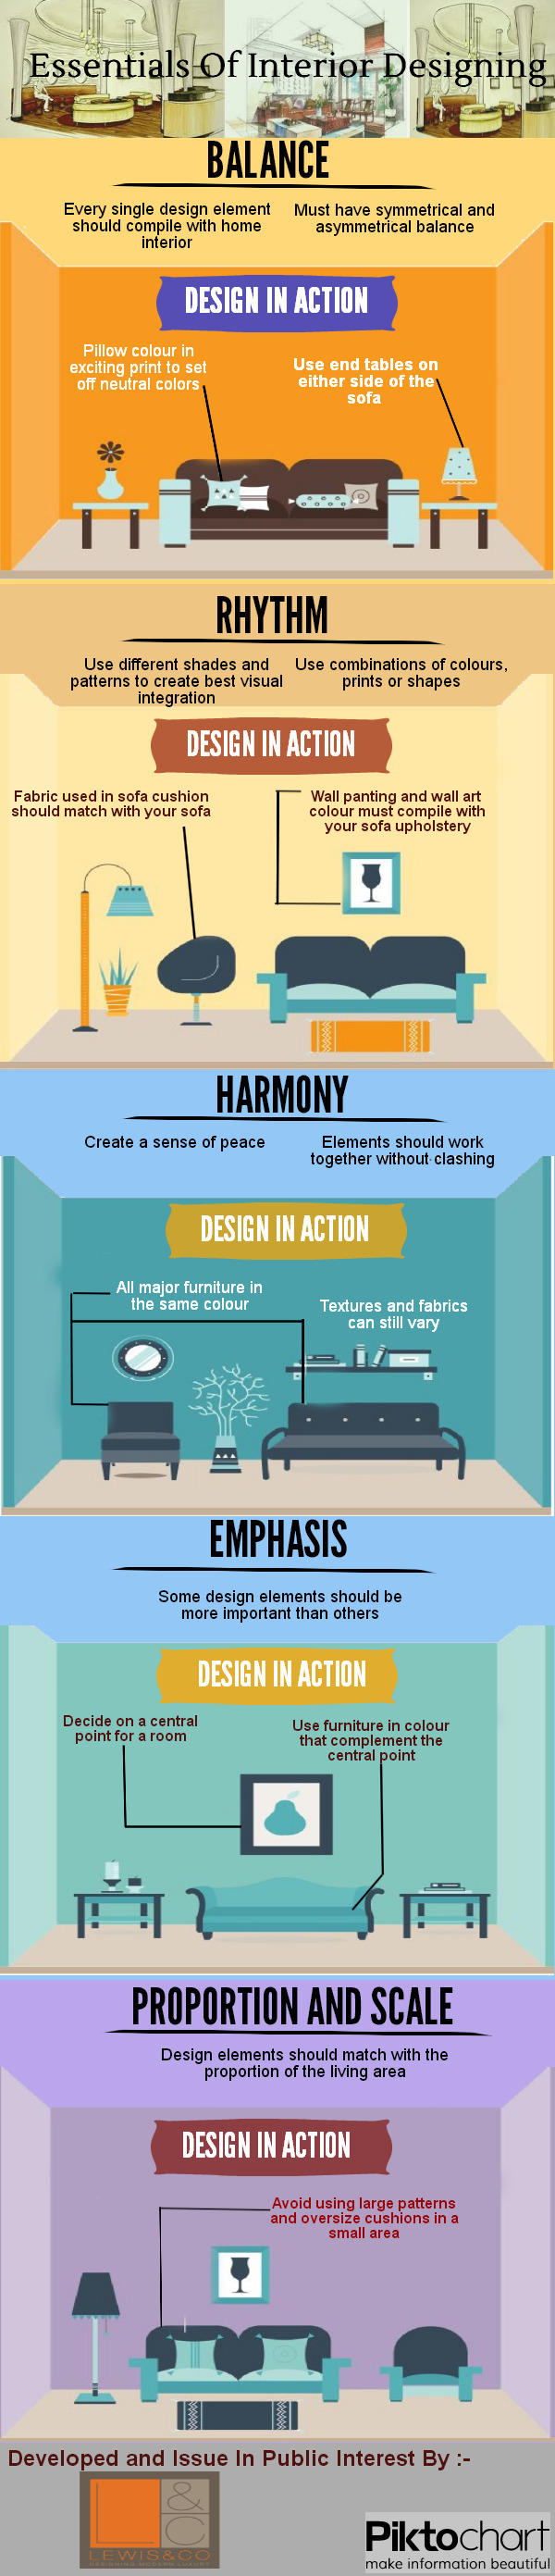 essentials-of-interior-designing_525f7f8965ccd